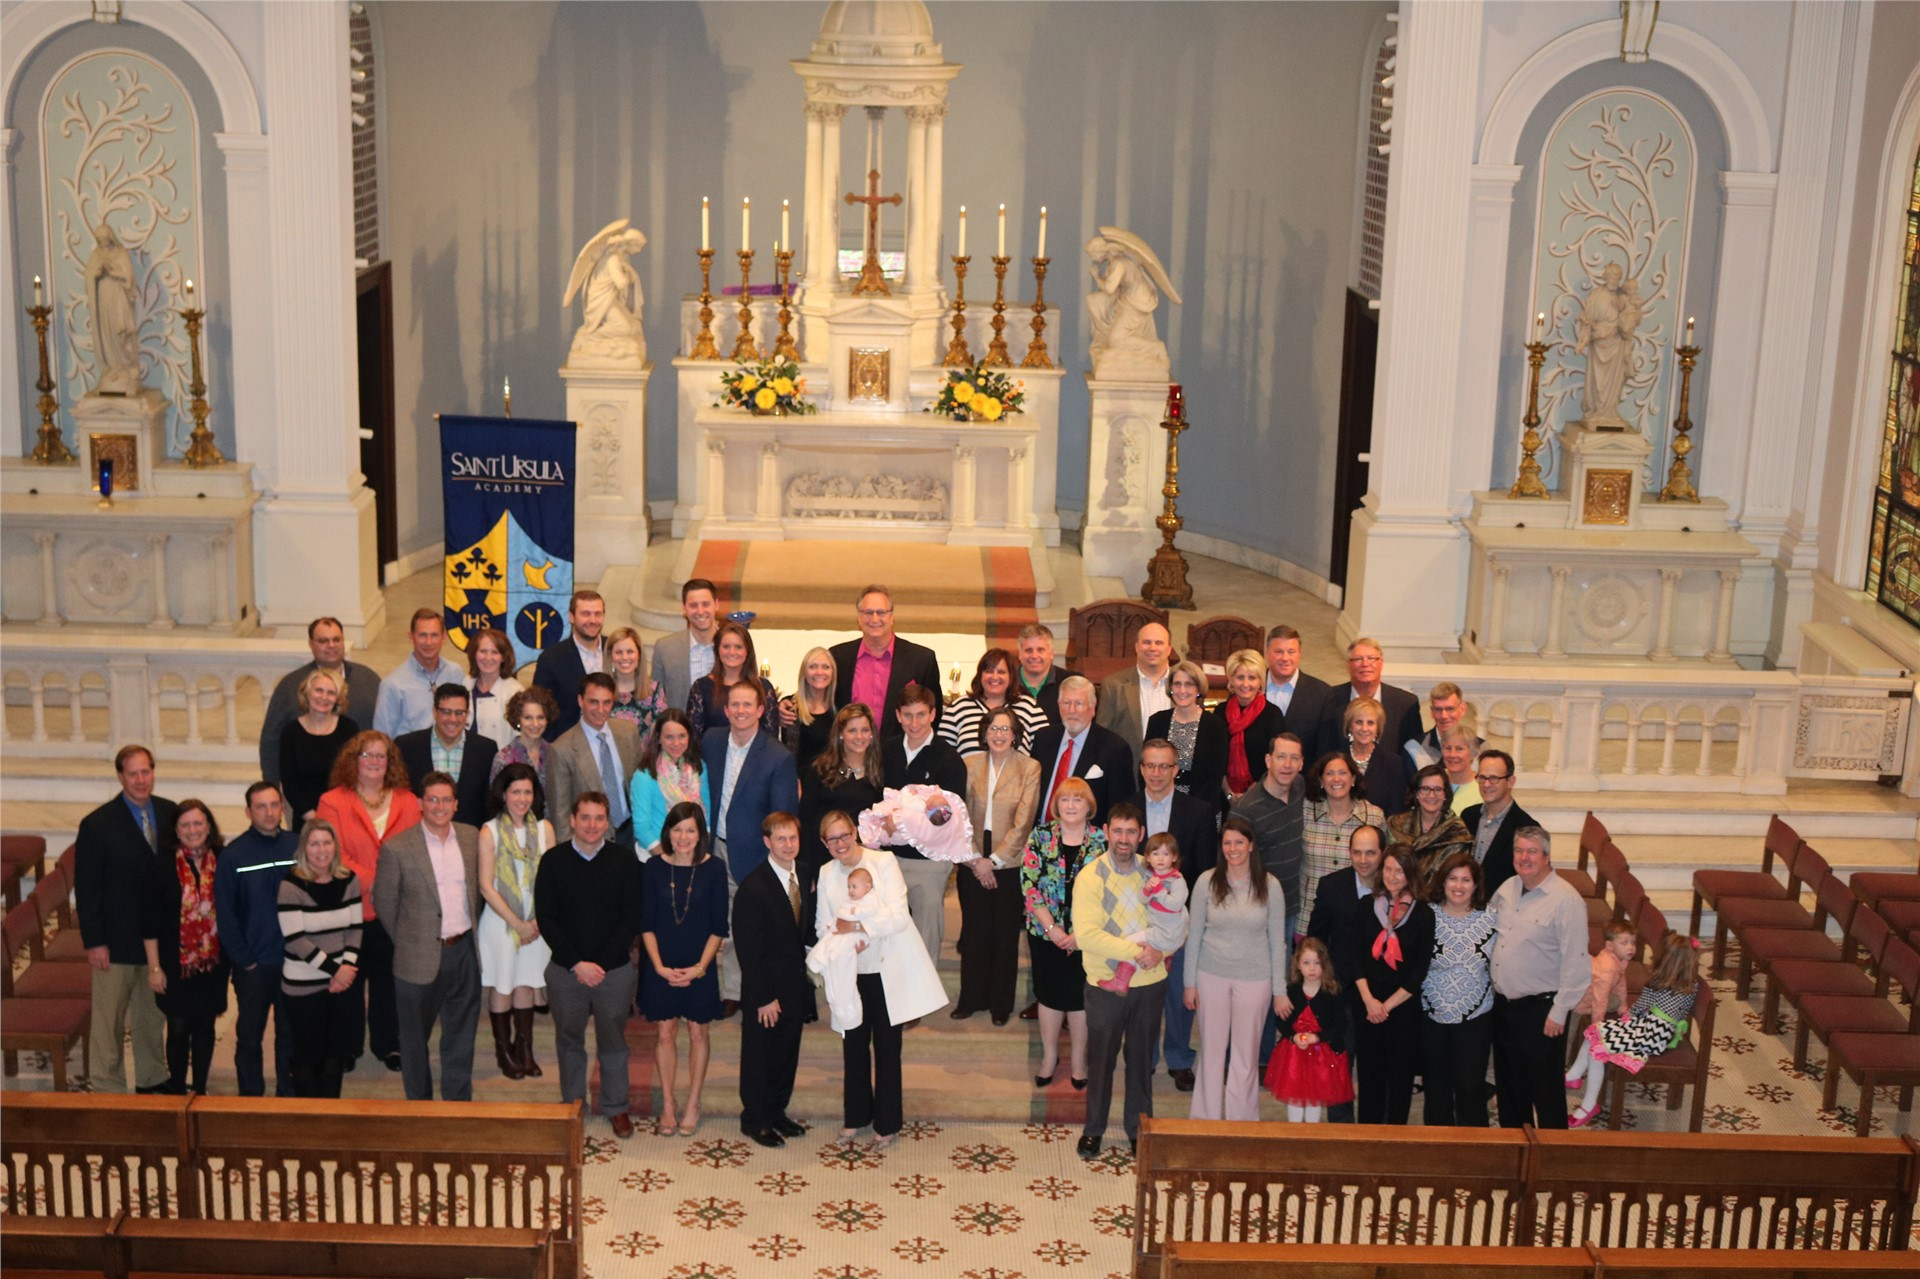 SUA Celebrates the 100th Anniversary of our Chapel with couples who were married here